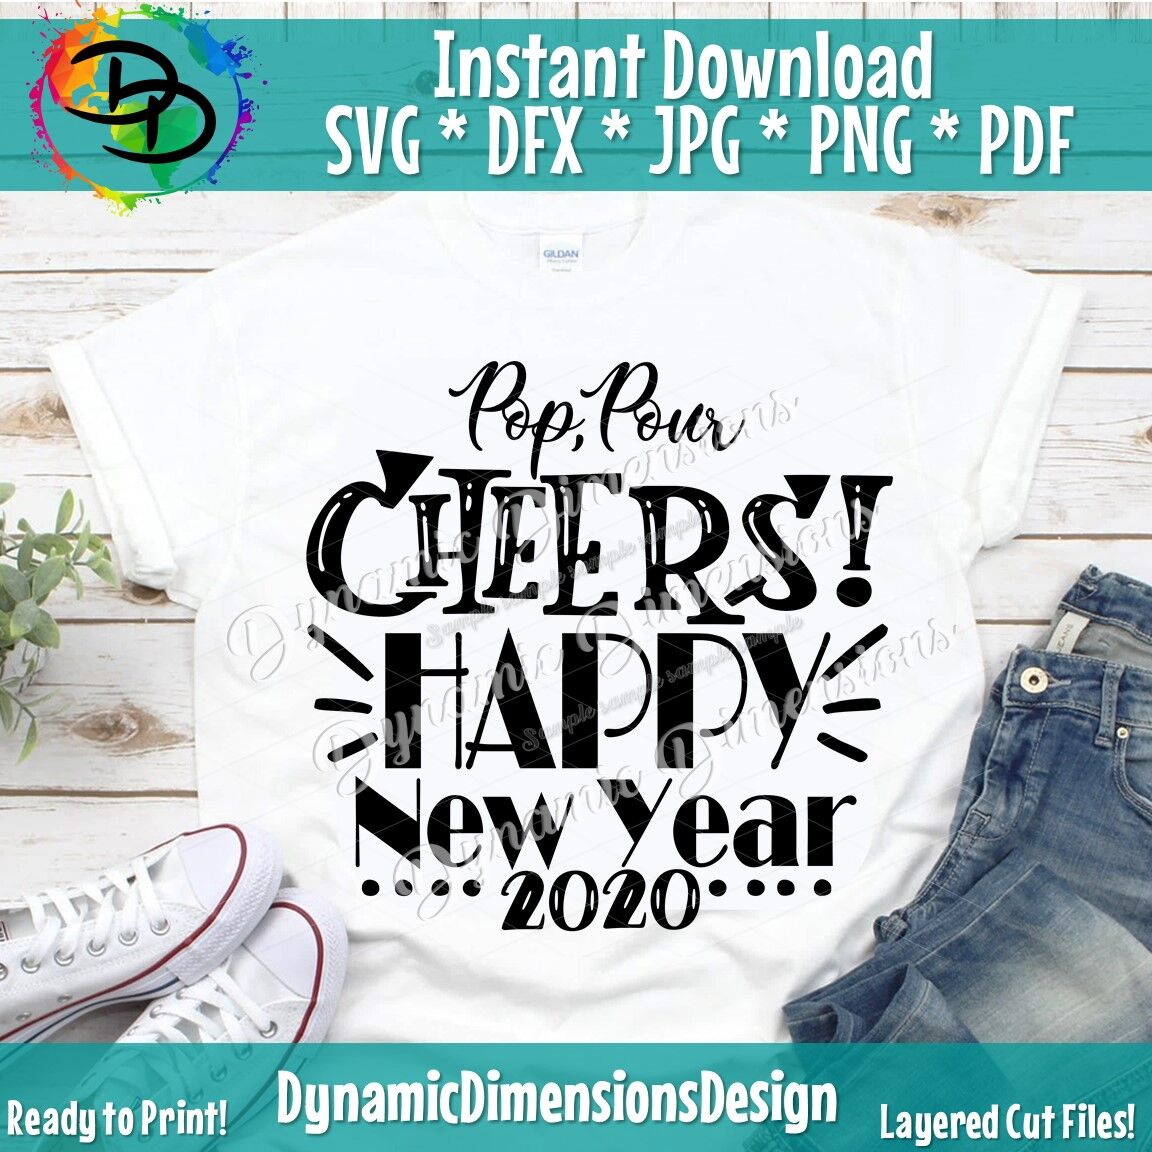 New Years Svg Champagne Svg Pop Pour Cheers Happy New Year 2020